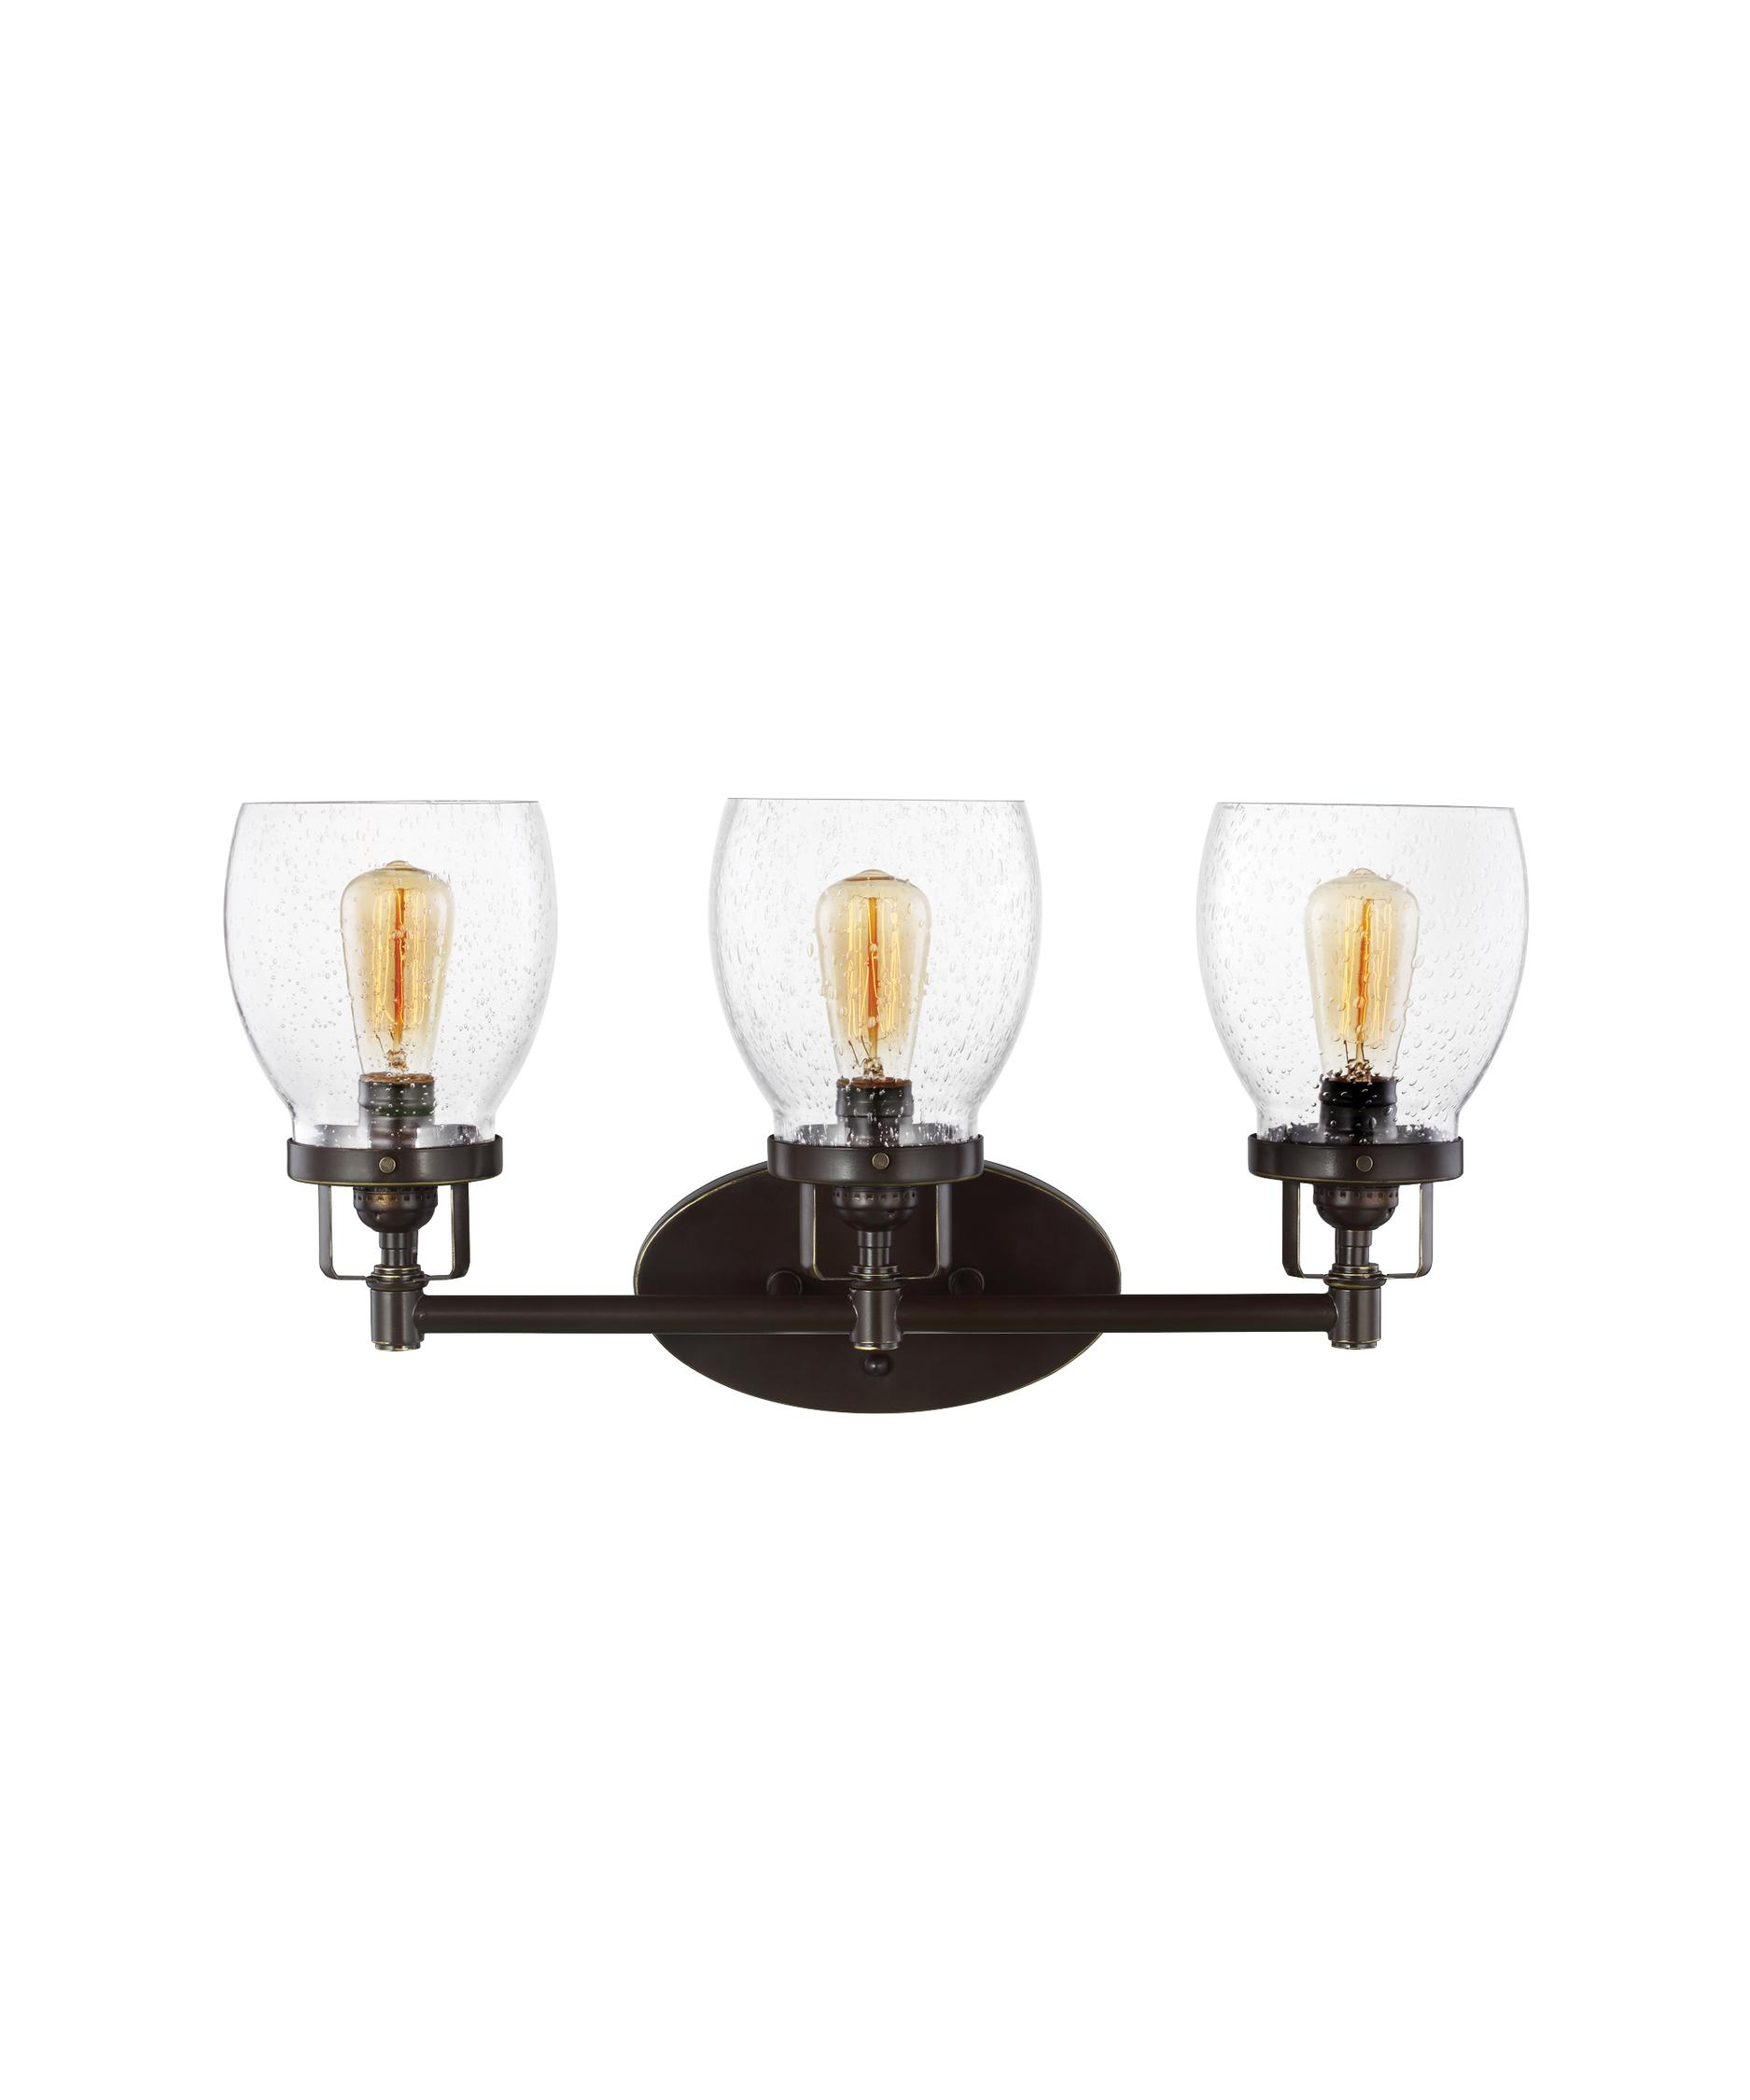 Bathroom Vanity Lights In Bronze sea gull lighting 4414503 belton 21 inch wide bath vanity light